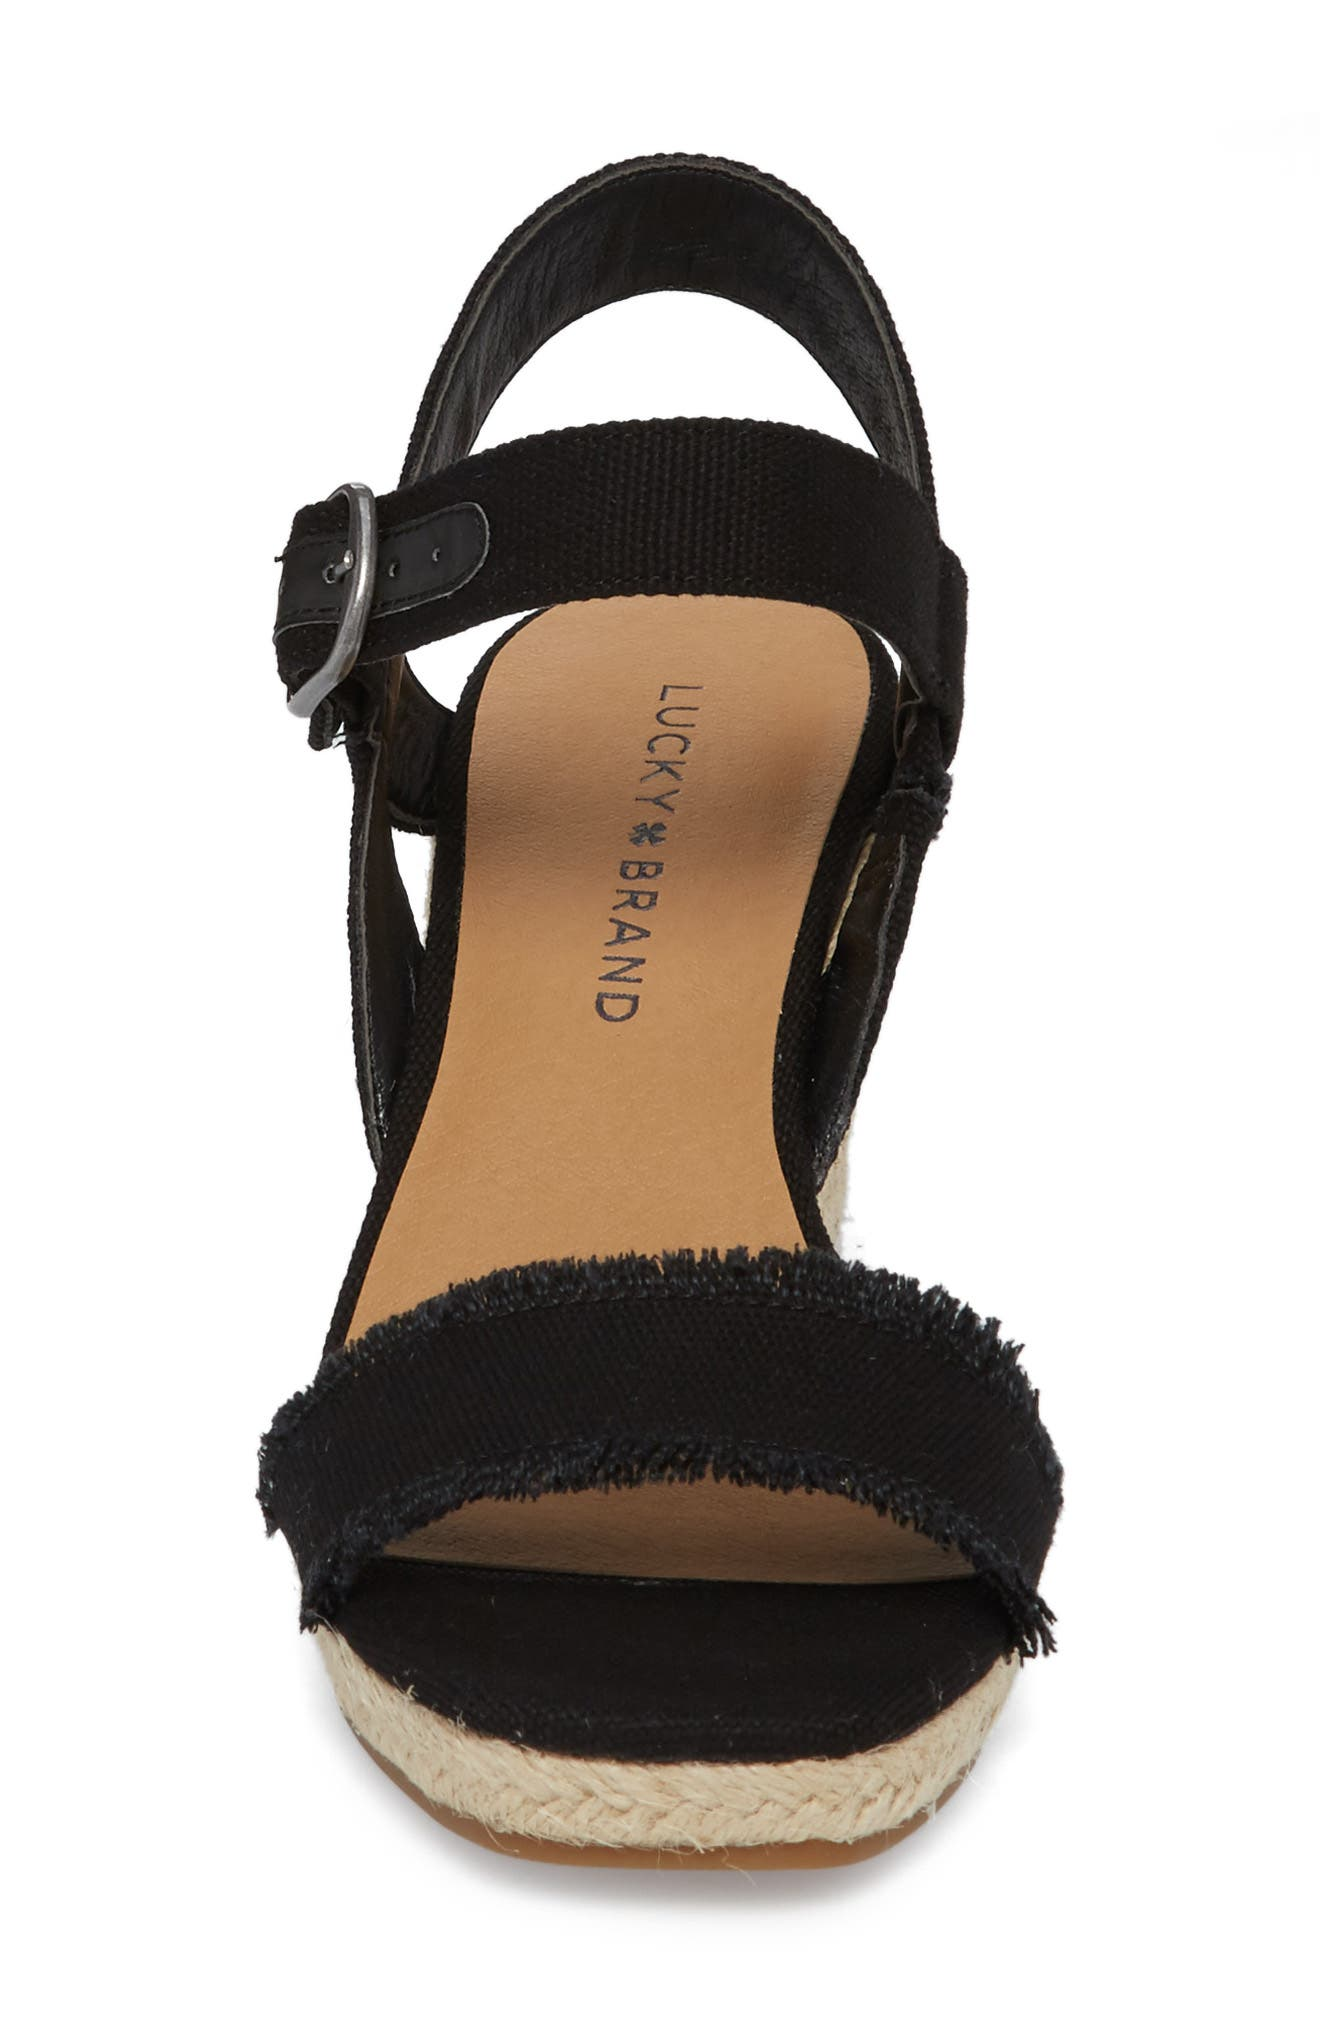 Marceline Squared Toe Wedge Sandal,                             Alternate thumbnail 4, color,                             001